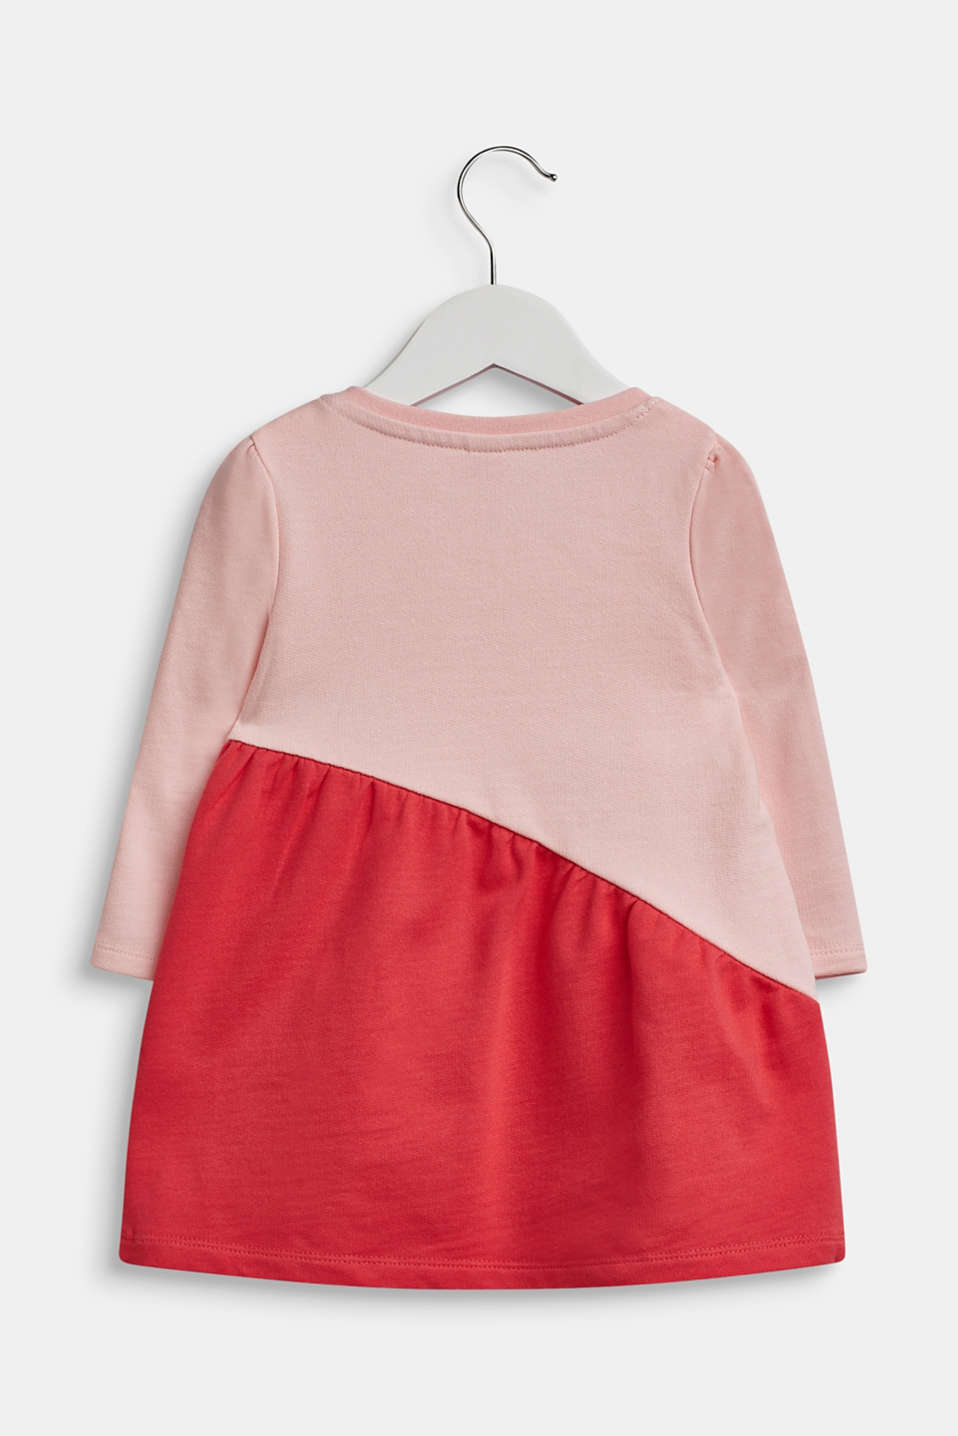 Striped sweatshirt dress, 100% cotton, LCTINTED ROSE, detail image number 1